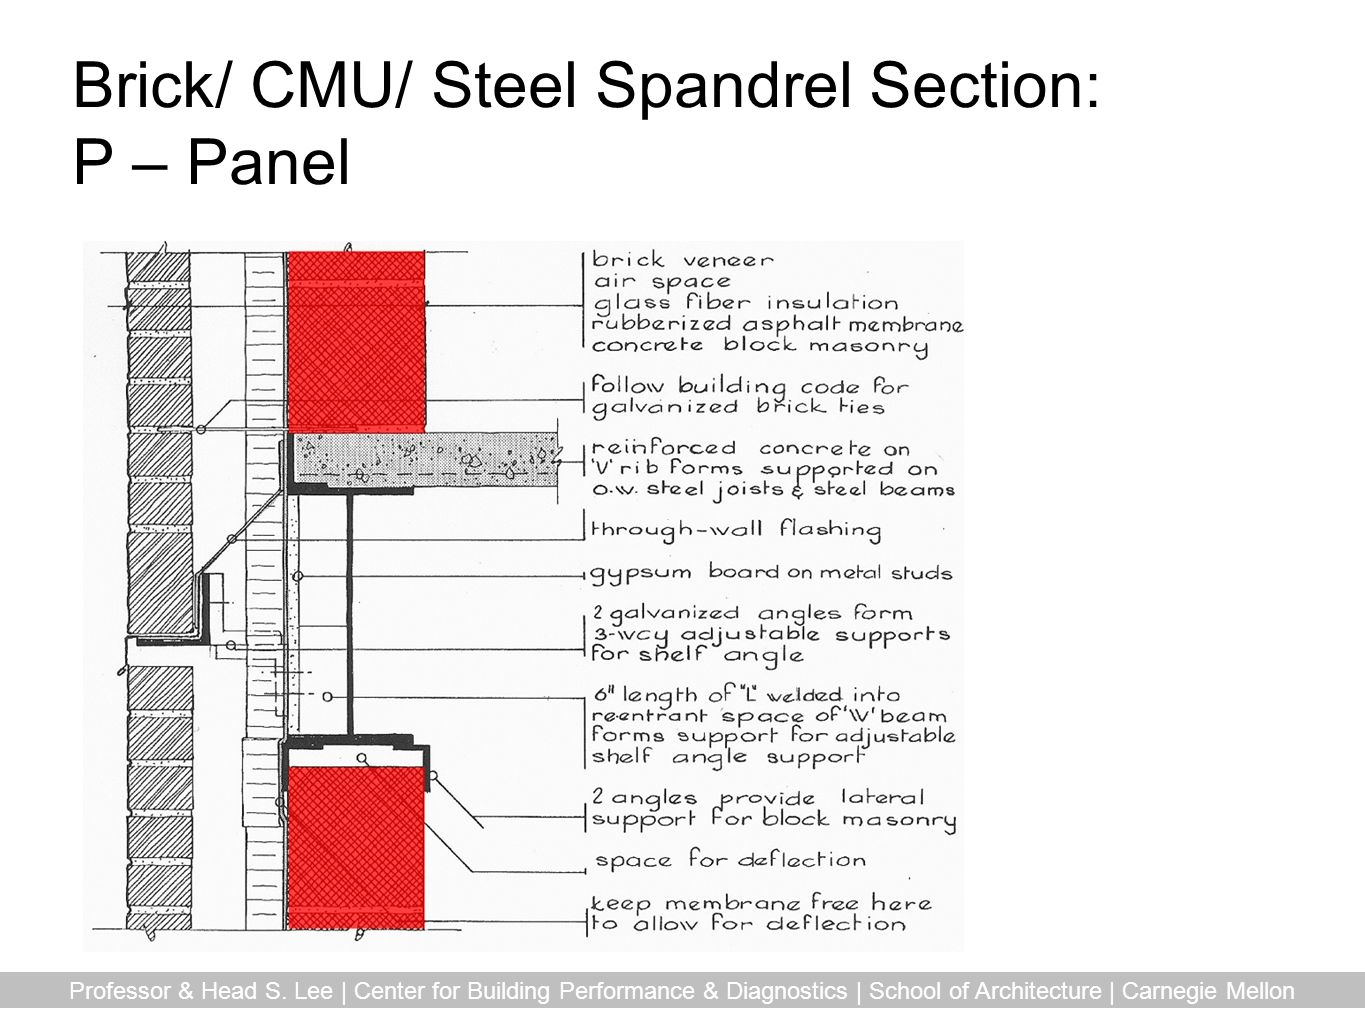 Brick/ CMU/ Steel Spandrel Section: P – Panel